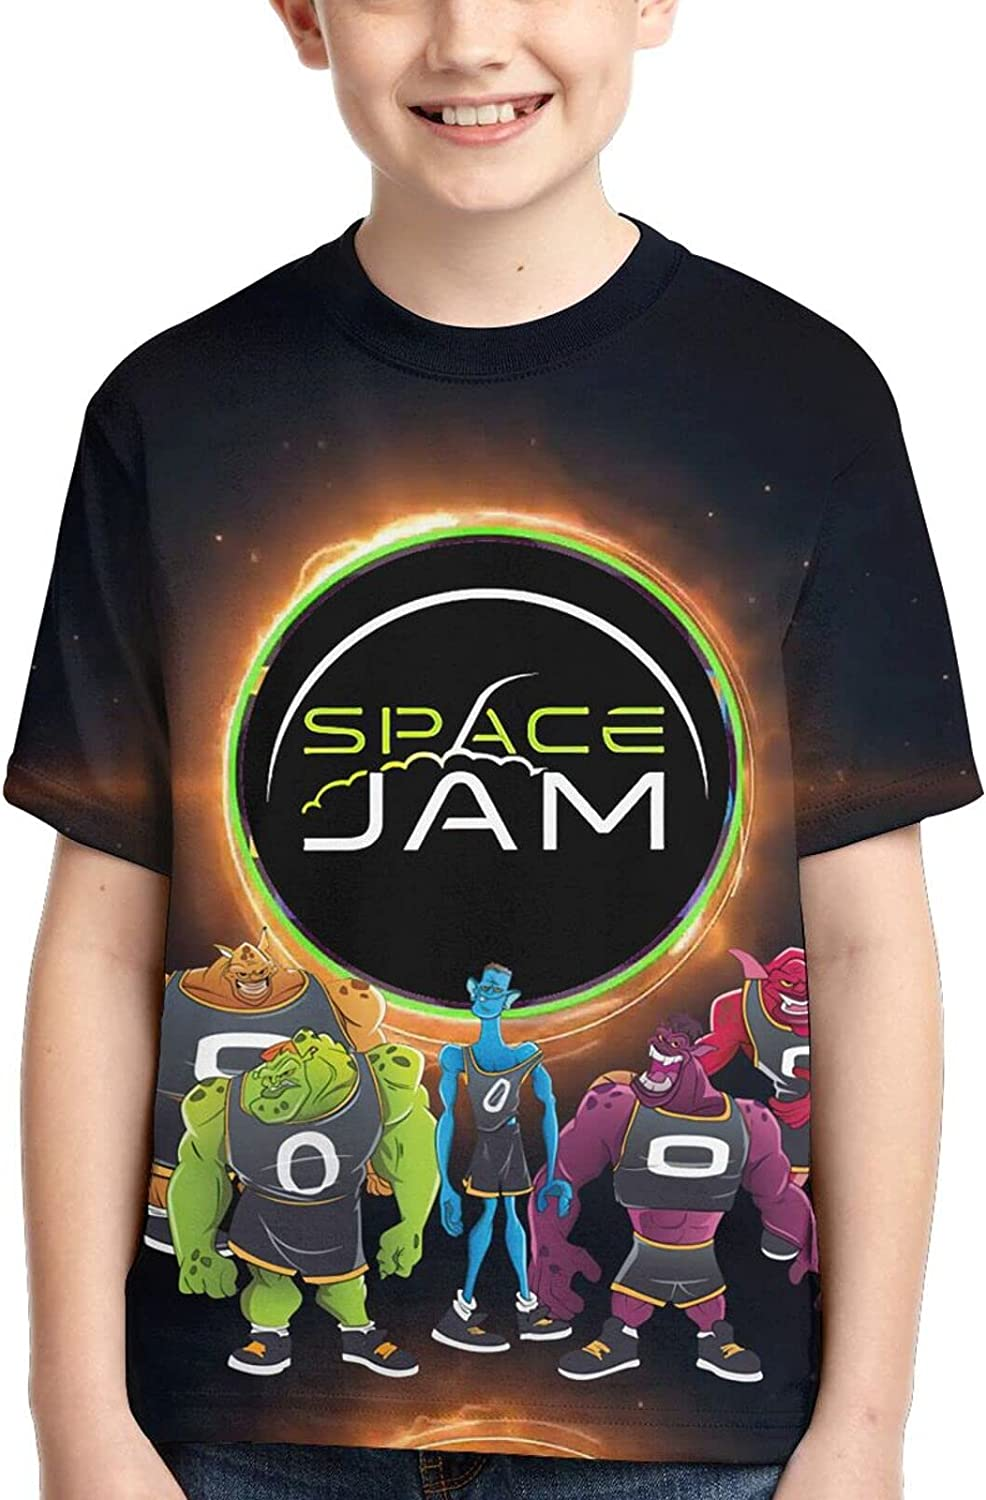 Kids Spa&Ce Ja&M T-Shirt Anime 3D Printed Cute Casual Graphic Shirt Short Sleeve Funny Tees Tops Summer for Boys Girls